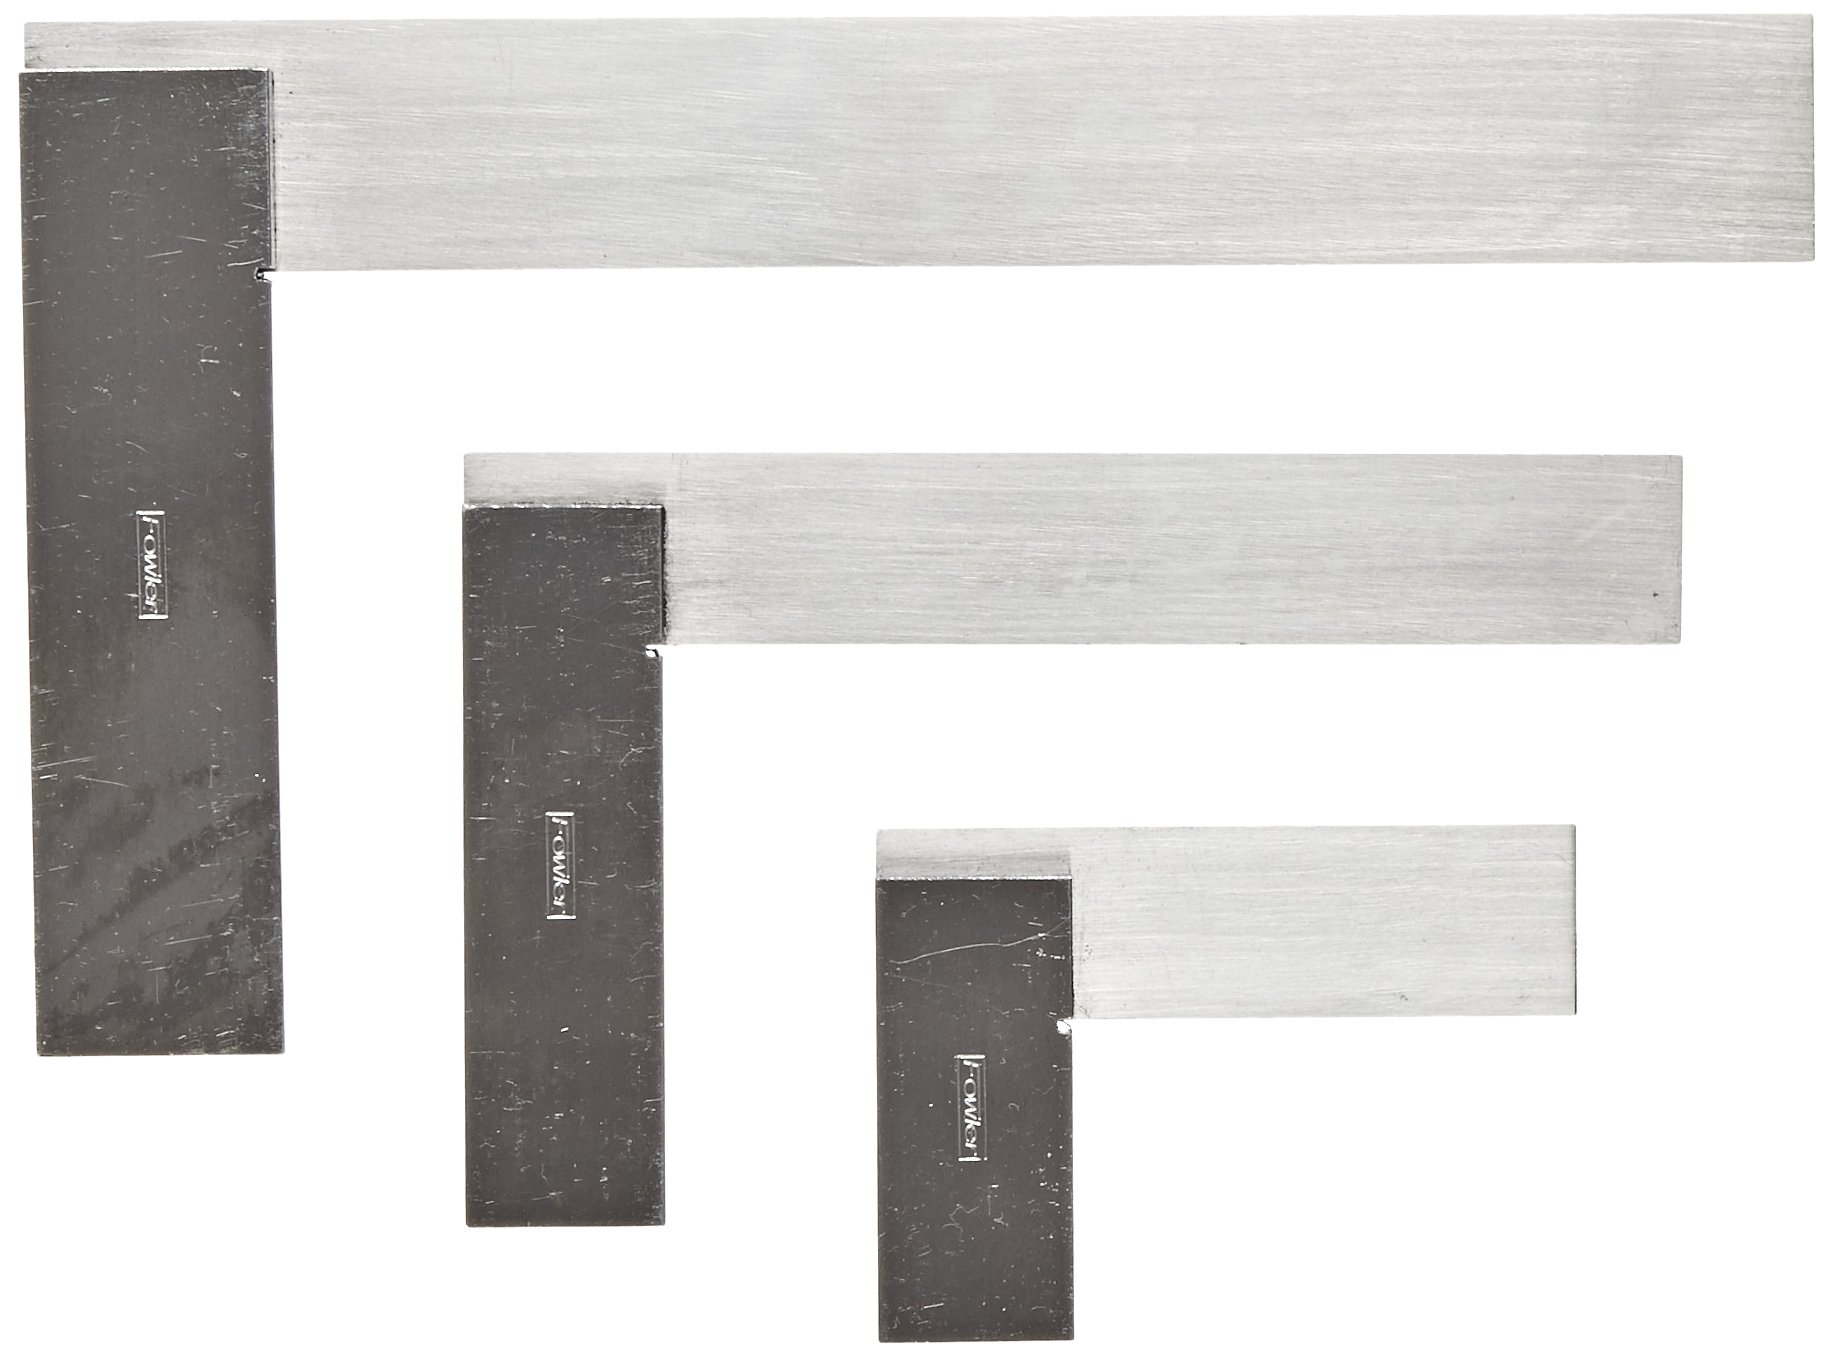 Fowler 52-432-444 Machinist Hardened Steel Square Set, 2'', 4'', and 6'' Blade Size